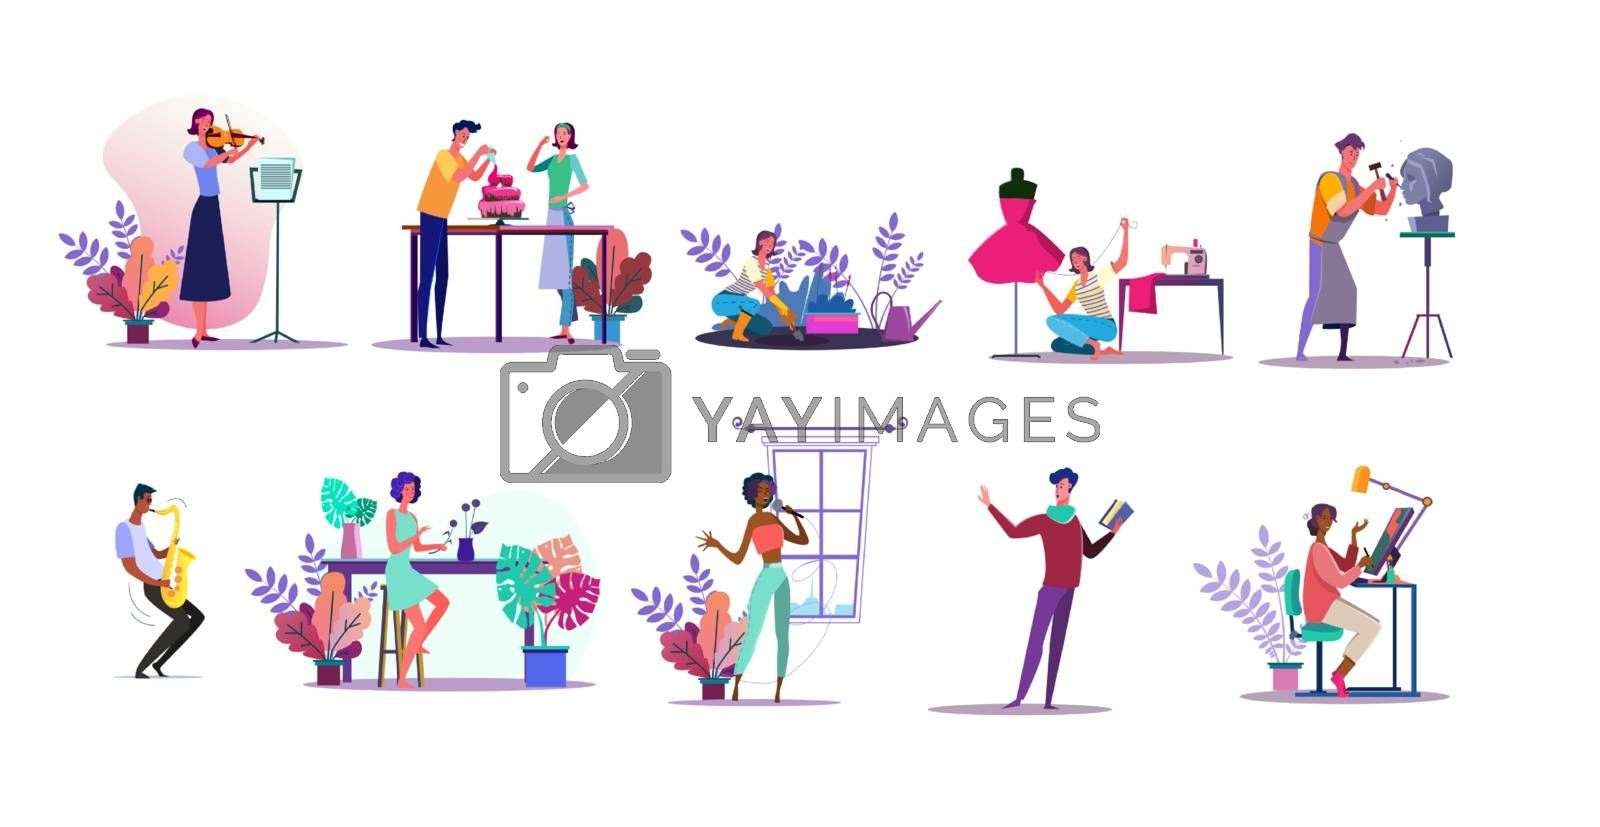 Vocation illustration set. People playing violin, sewing, gardening, cooking cake. Creativity concept. Vector illustration for topics like hobby, occupation, lifestyle